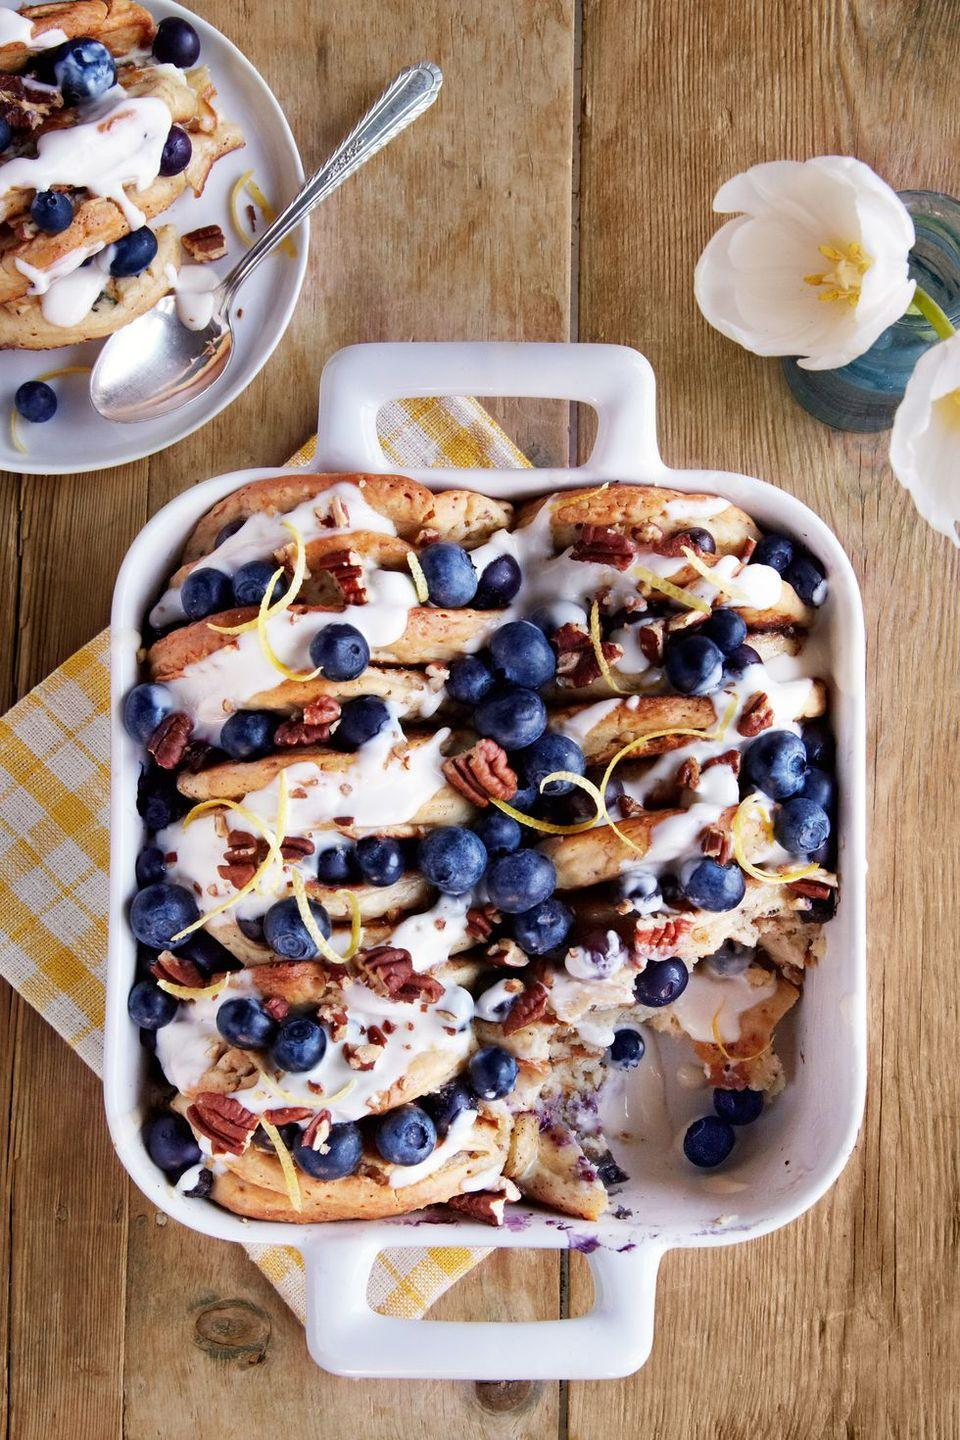 """<p>Why not made a mouthwatering Mother's Day breakfast that doubles as dessert? It's a holiday, after all. This decadent bread pudding is made with pancakes packed with blueberries and pecans.</p><p><strong><a href=""""https://www.countryliving.com/food-drinks/recipes/a37601/blueberry-pecan-pancake-bread-pudding/"""" rel=""""nofollow noopener"""" target=""""_blank"""" data-ylk=""""slk:Get the recipe"""" class=""""link rapid-noclick-resp"""">Get the recipe</a>.</strong></p><p><a class=""""link rapid-noclick-resp"""" href=""""https://www.amazon.com/Presto-Cool-Touch-Electric-Ceramic-Griddle/dp/B01G7DM6VE?tag=syn-yahoo-20&ascsubtag=%5Bartid%7C10050.g.1681%5Bsrc%7Cyahoo-us"""" rel=""""nofollow noopener"""" target=""""_blank"""" data-ylk=""""slk:SHOP GRIDDLES"""">SHOP GRIDDLES</a> </p>"""